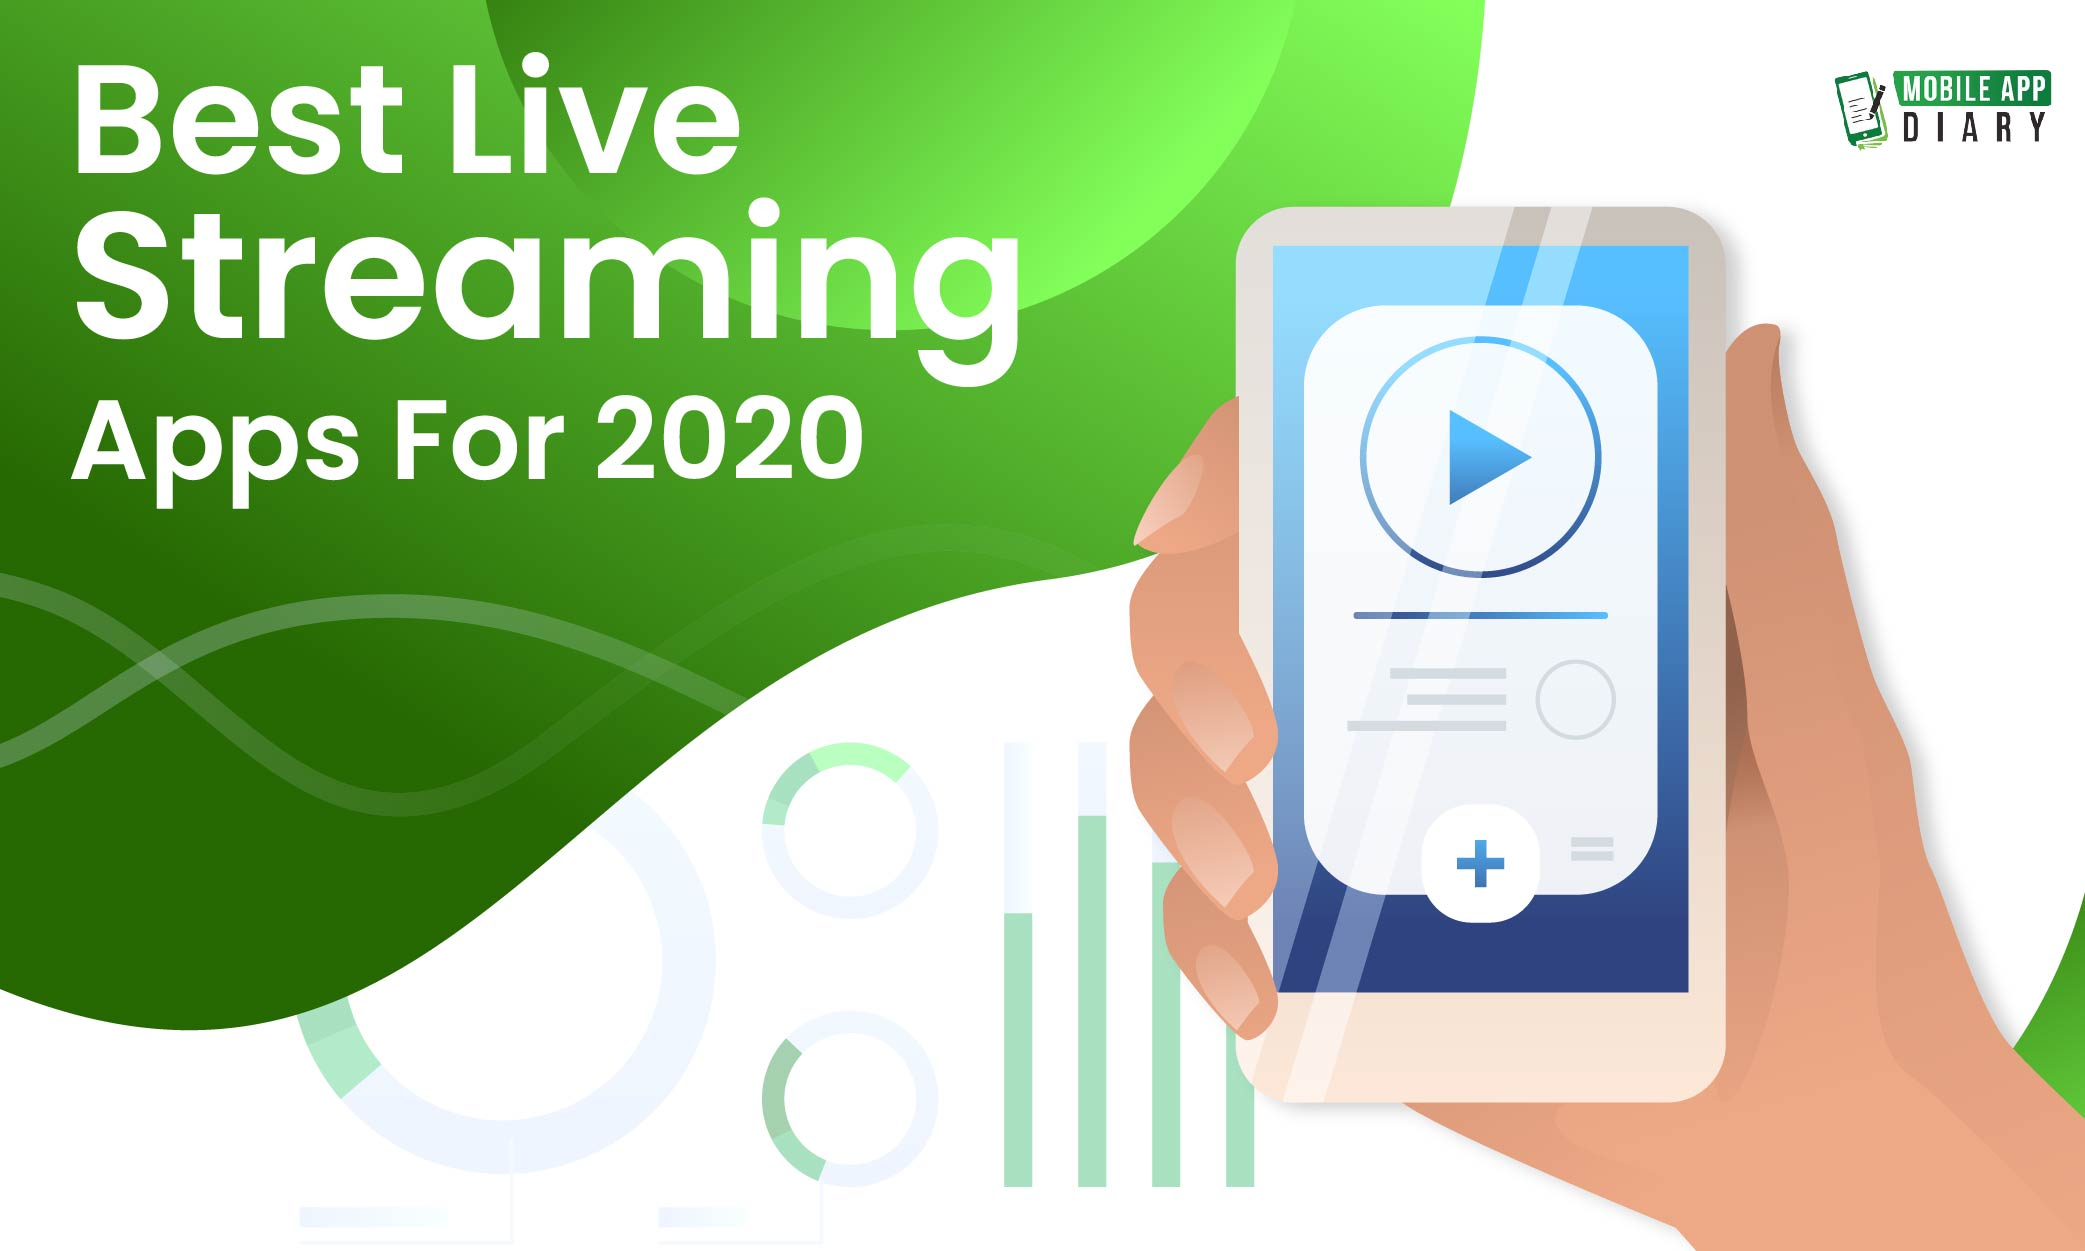 Best Live Streaming Apps for 2020